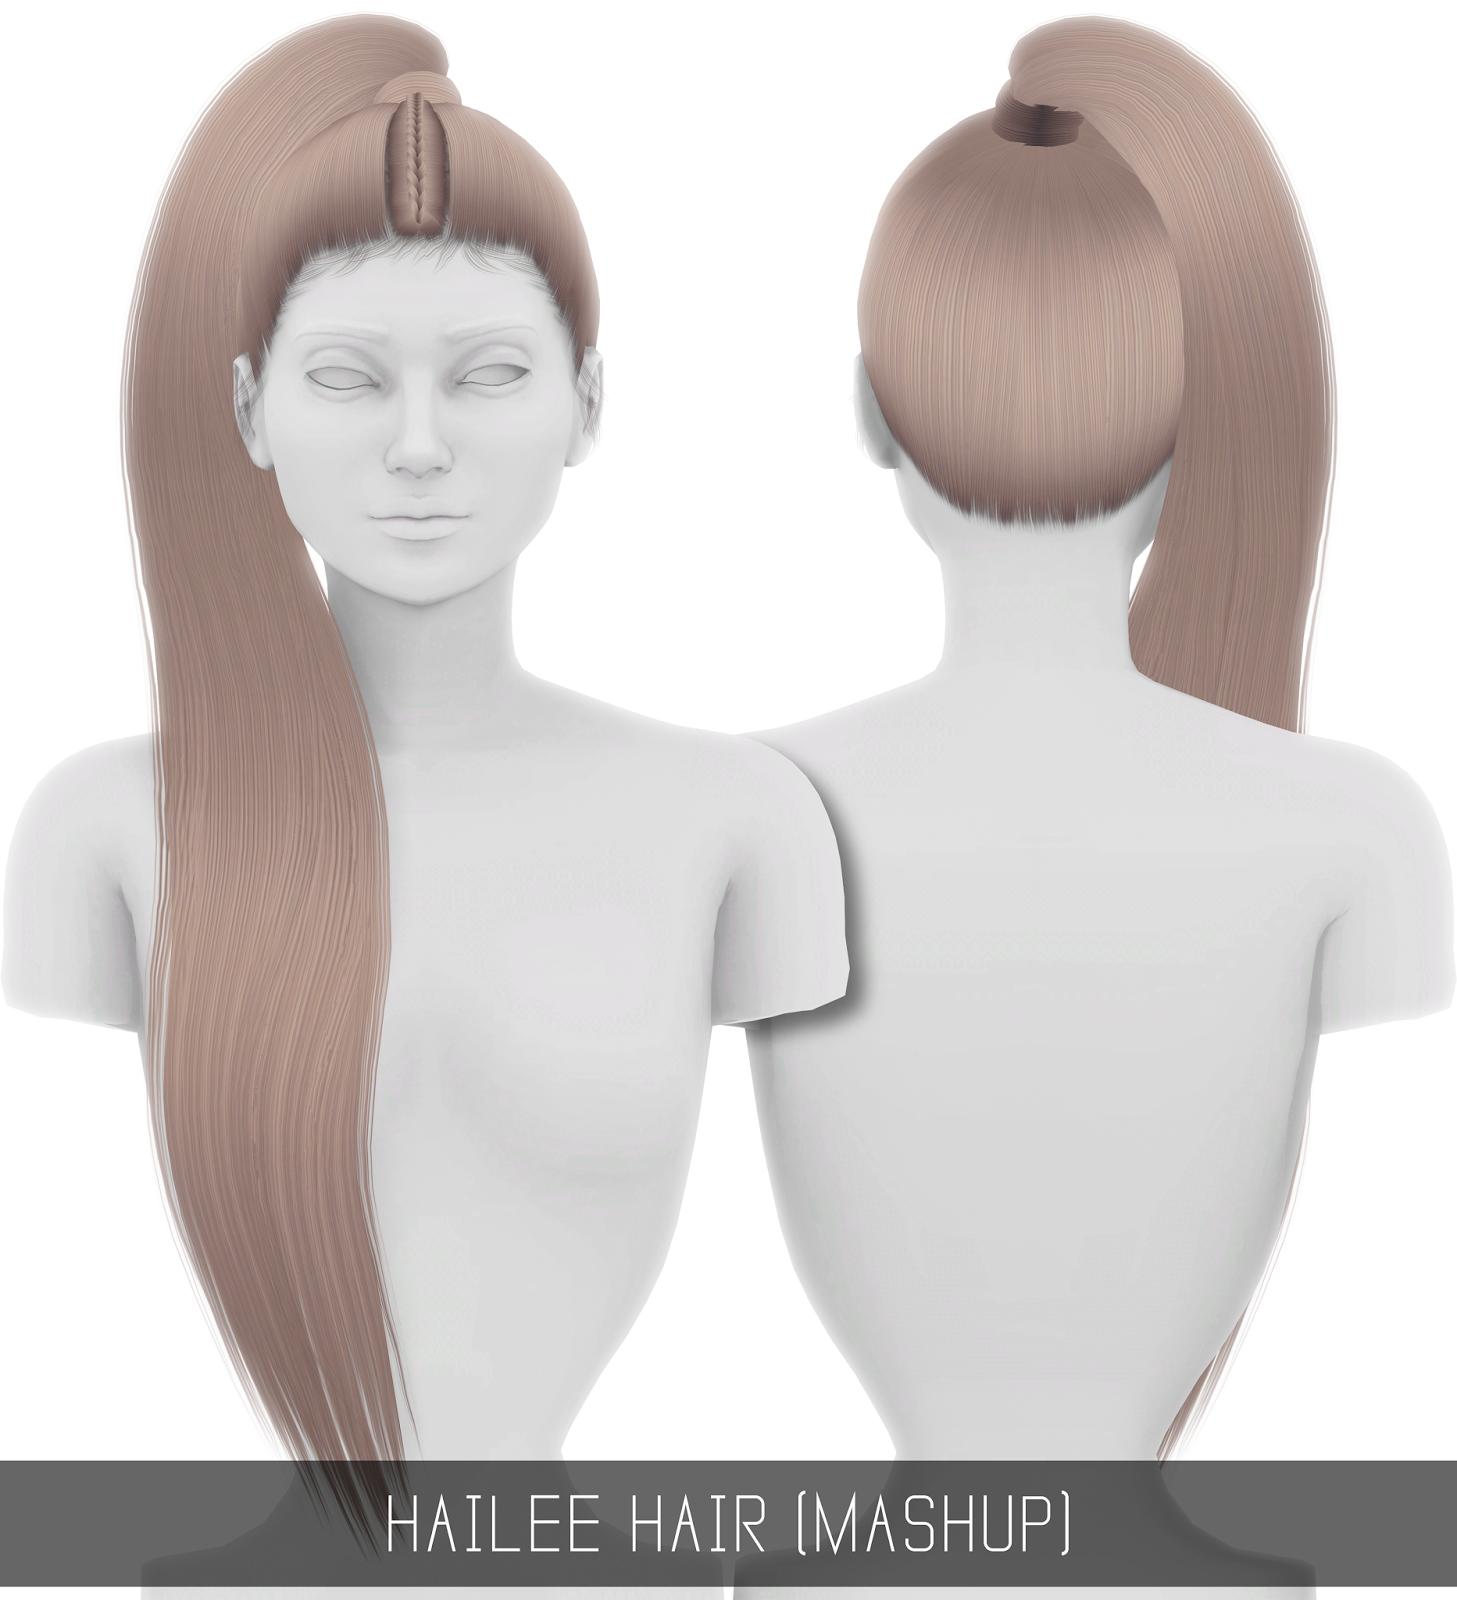 HAILEE HAIR (MASHUP) by Simpliciaty